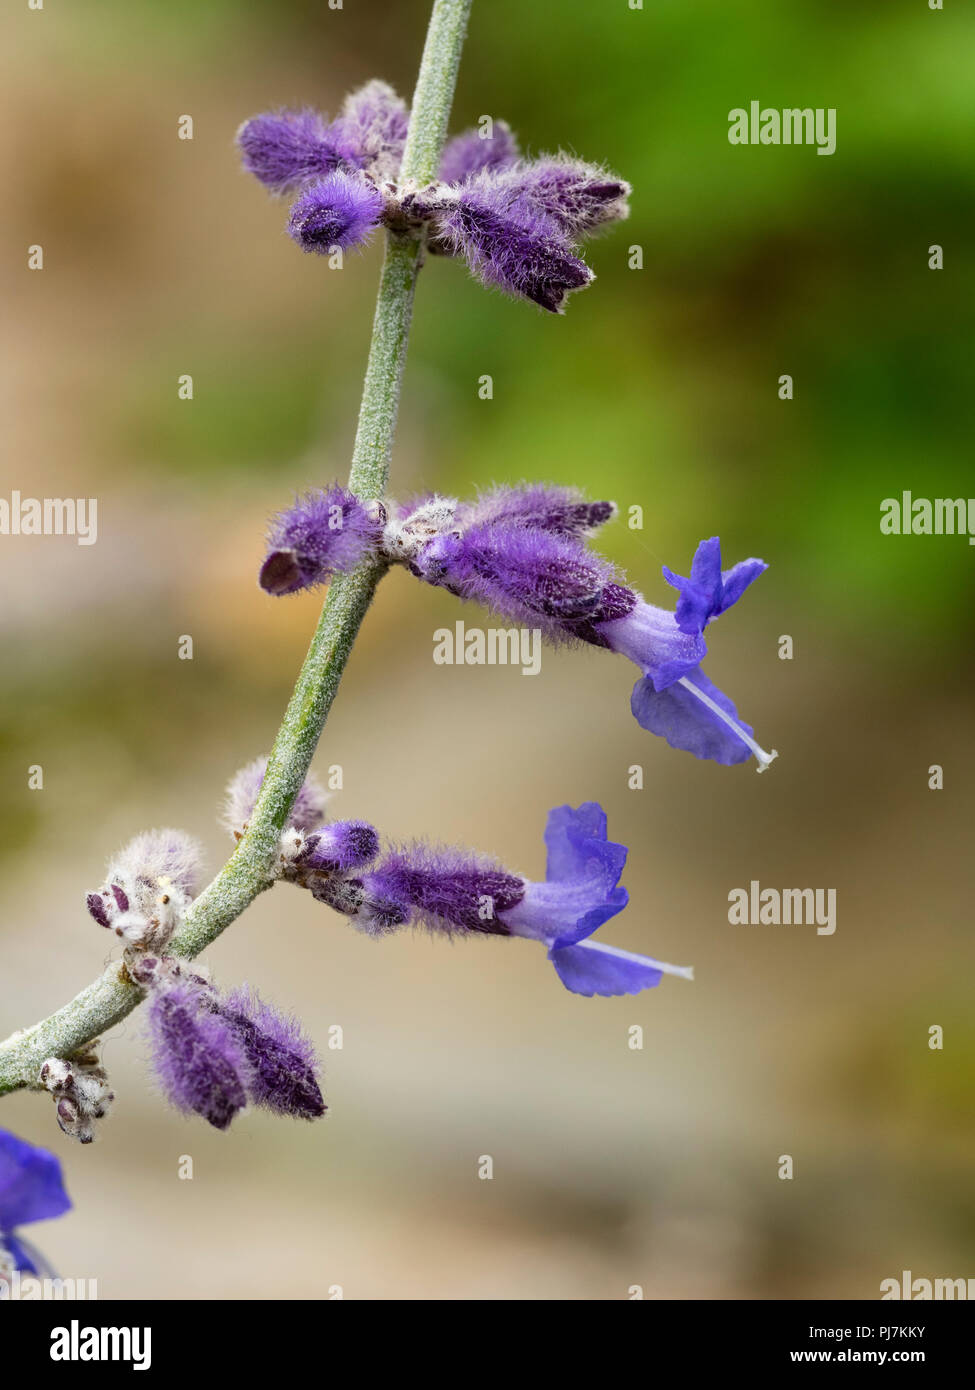 Close up of the late summer blue flowers of the Russian sage, Perovskia atriplicifolia 'Blue Spire' - Stock Image